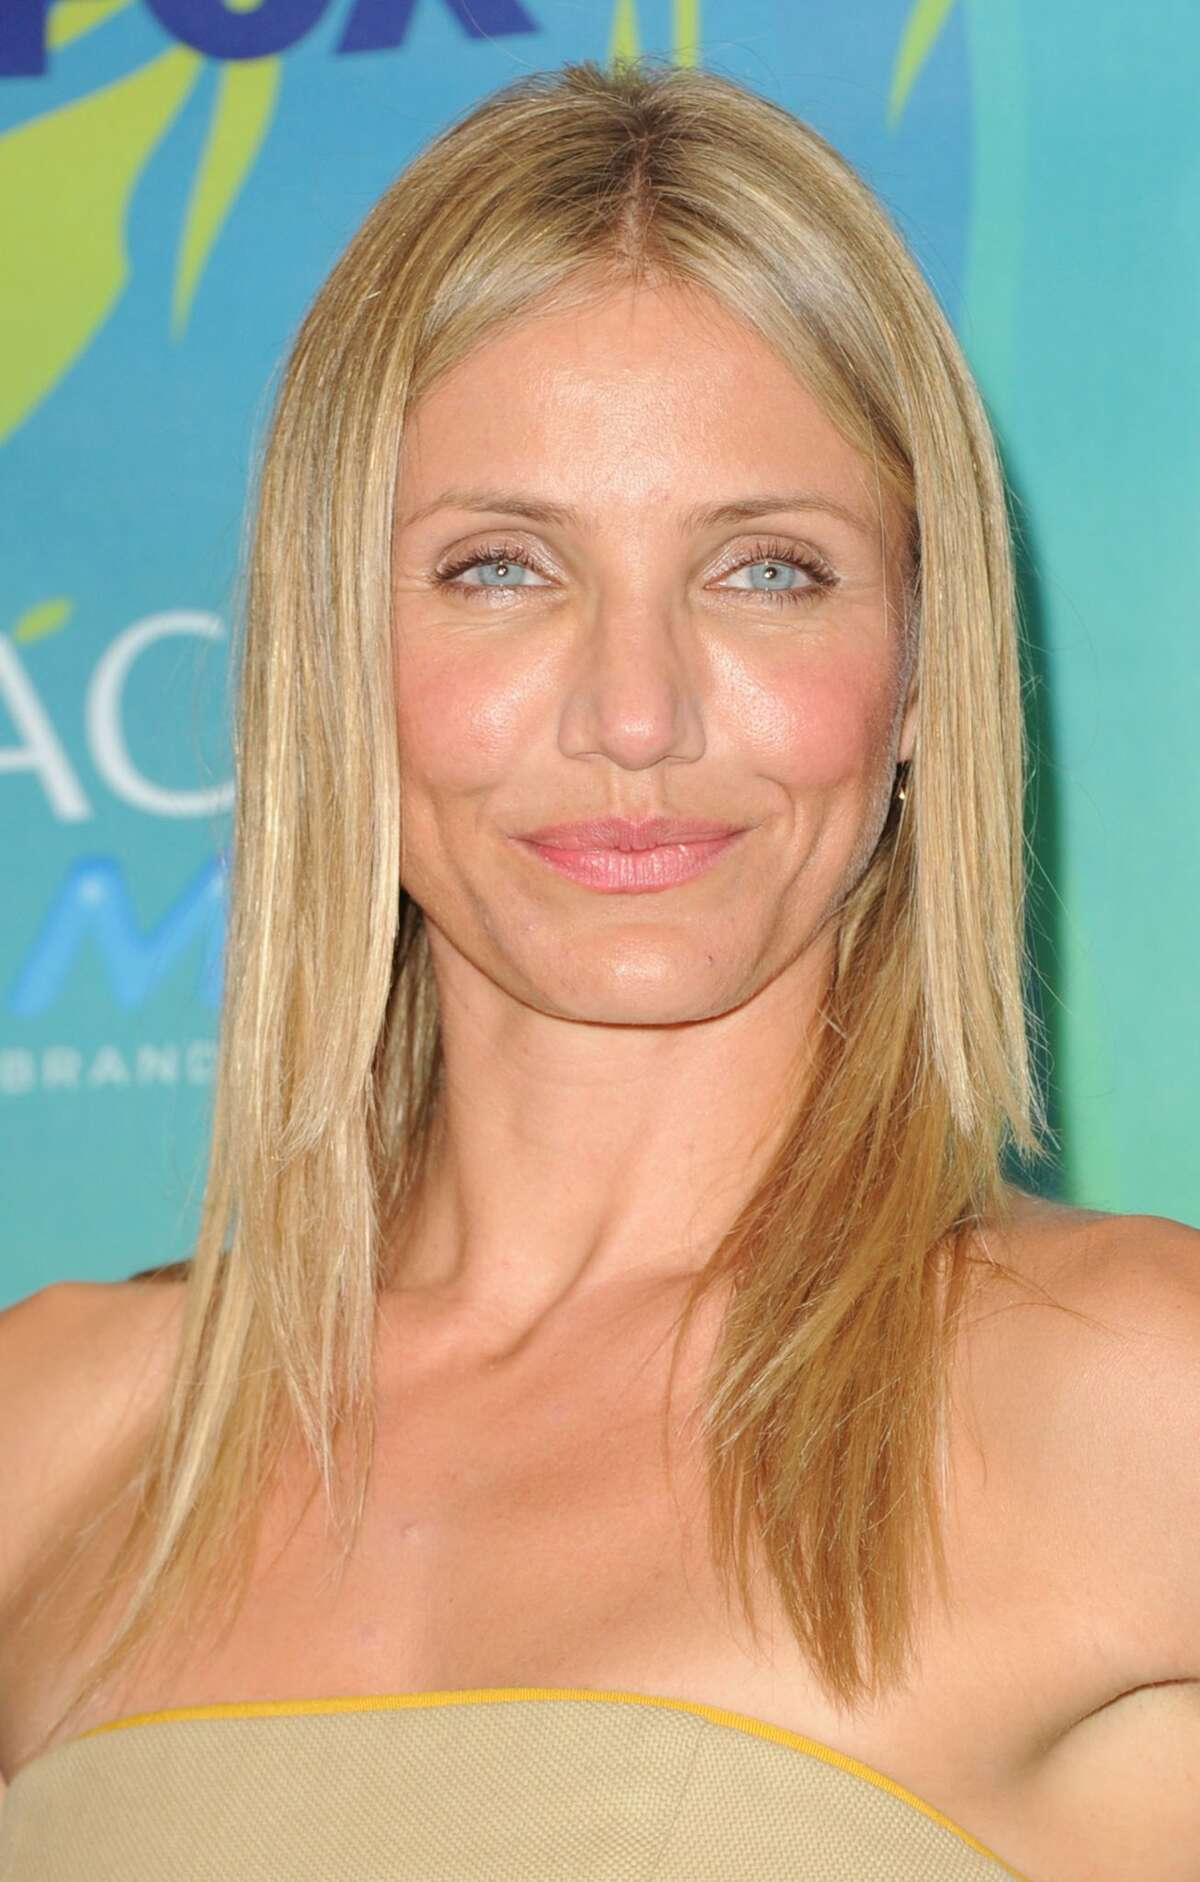 Cameron Diaz, winner of the Best Actress Comedy award for